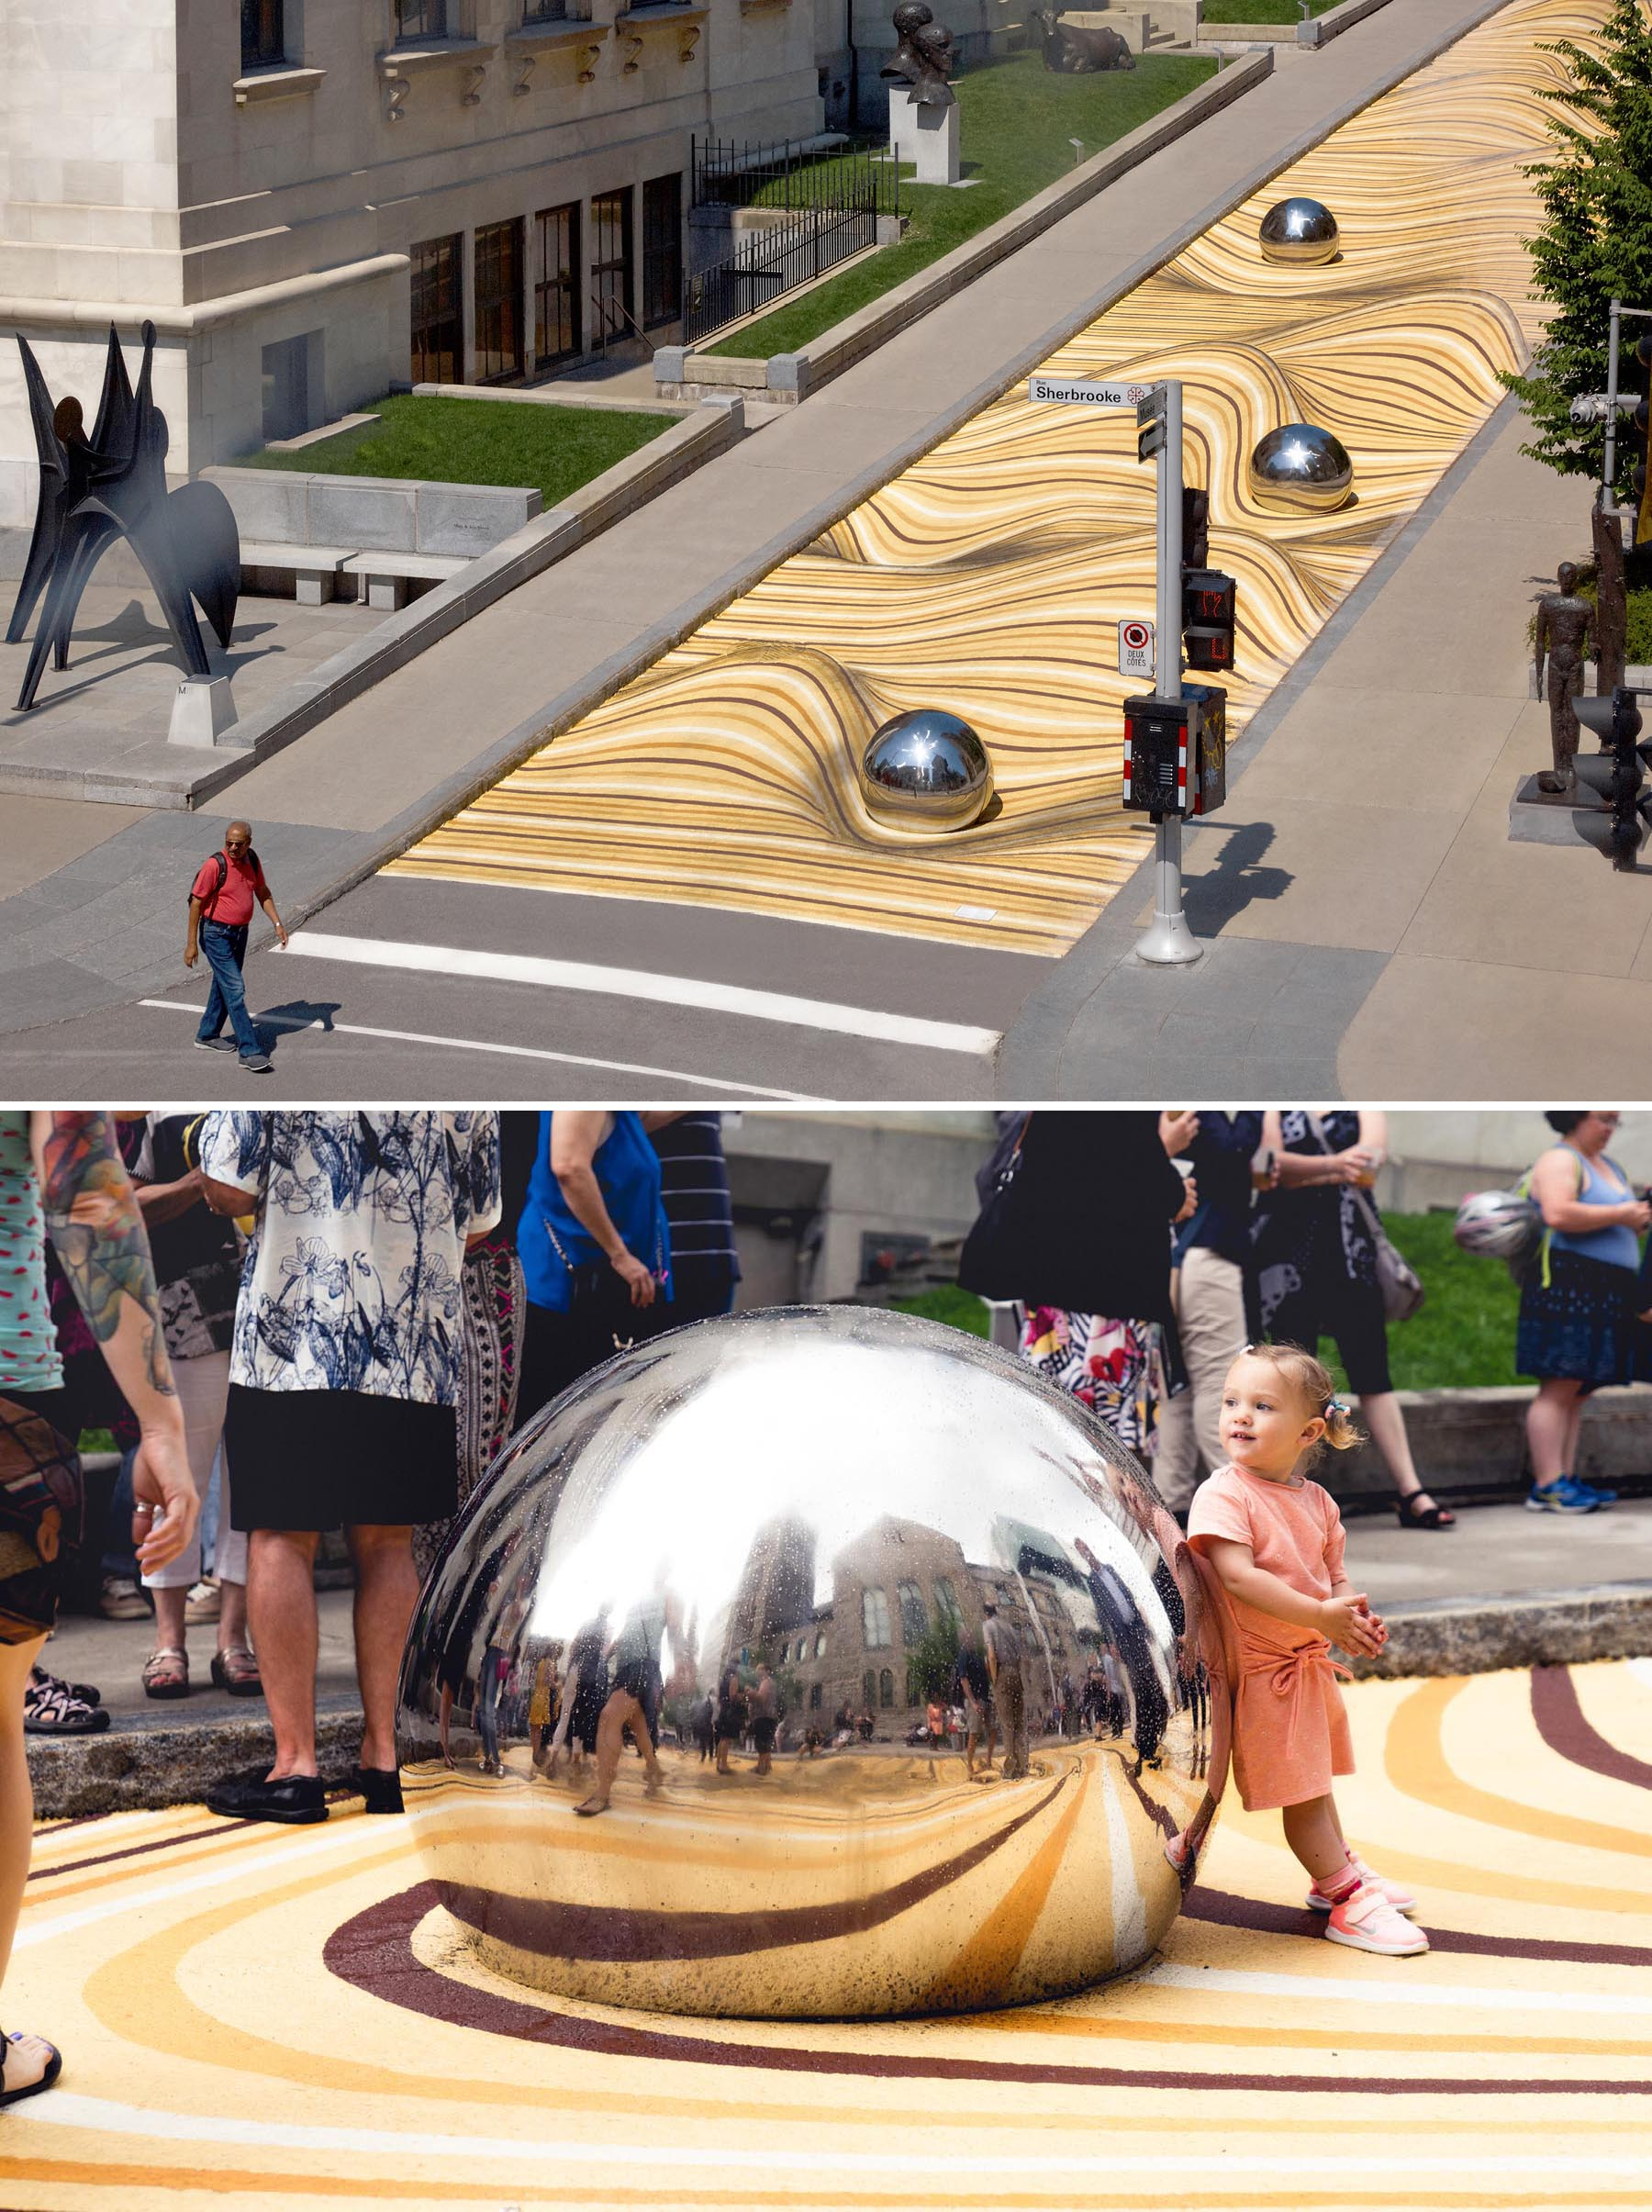 A public mural in Montreal that manipulates the street surface, creates the illusion of large ripples, and has large balls that reflect its surroundings.